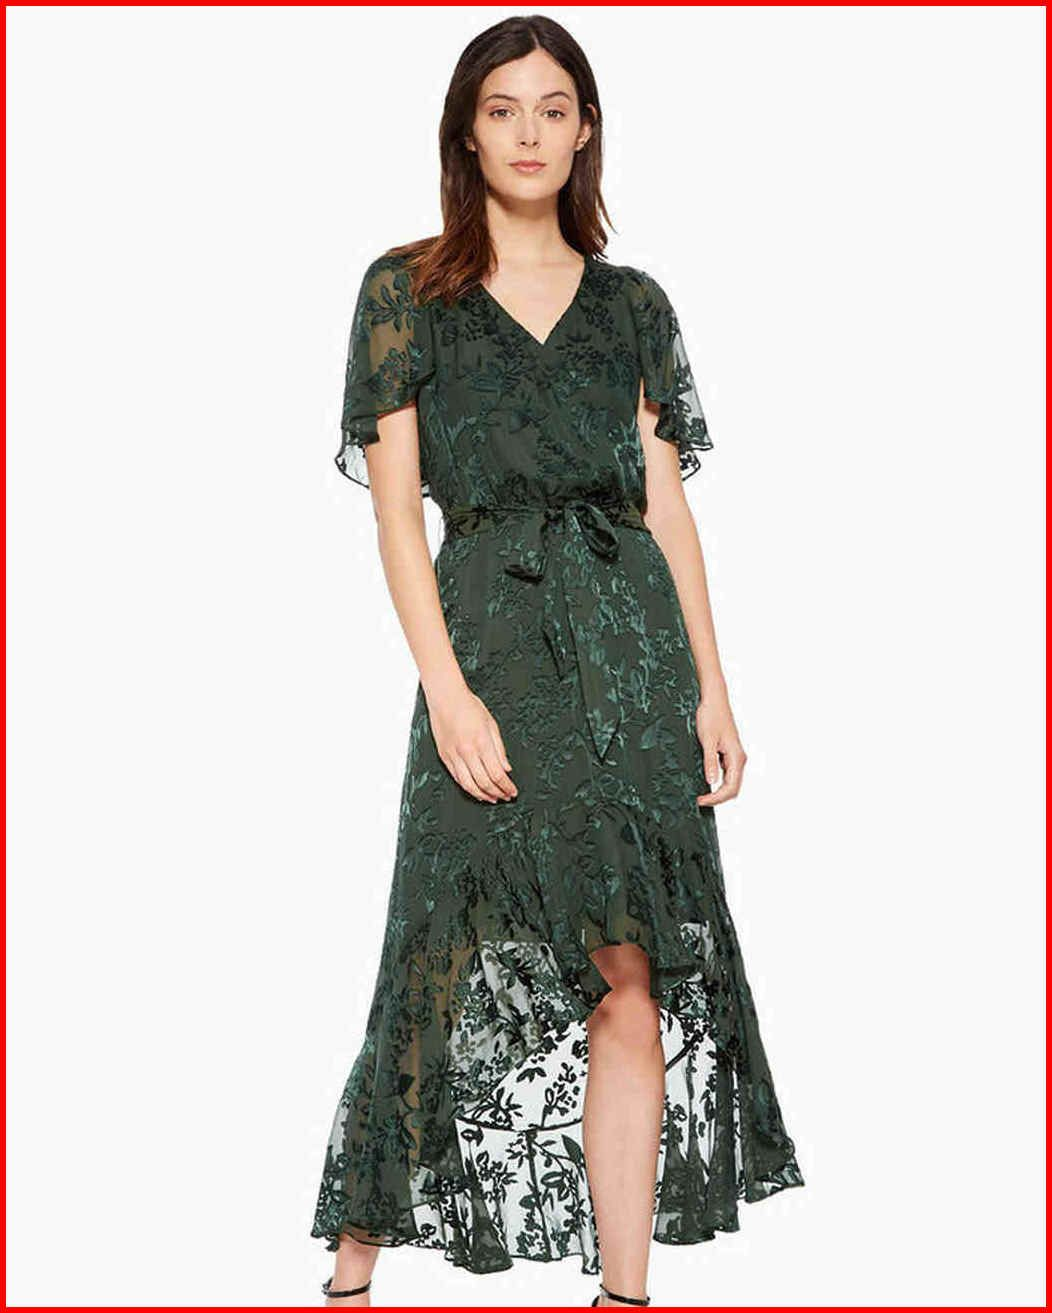 bd61573d9392 25 Beautiful Dresses to Wear as a Wedding Guest This Fall | Martha ... |  Dresses for Women